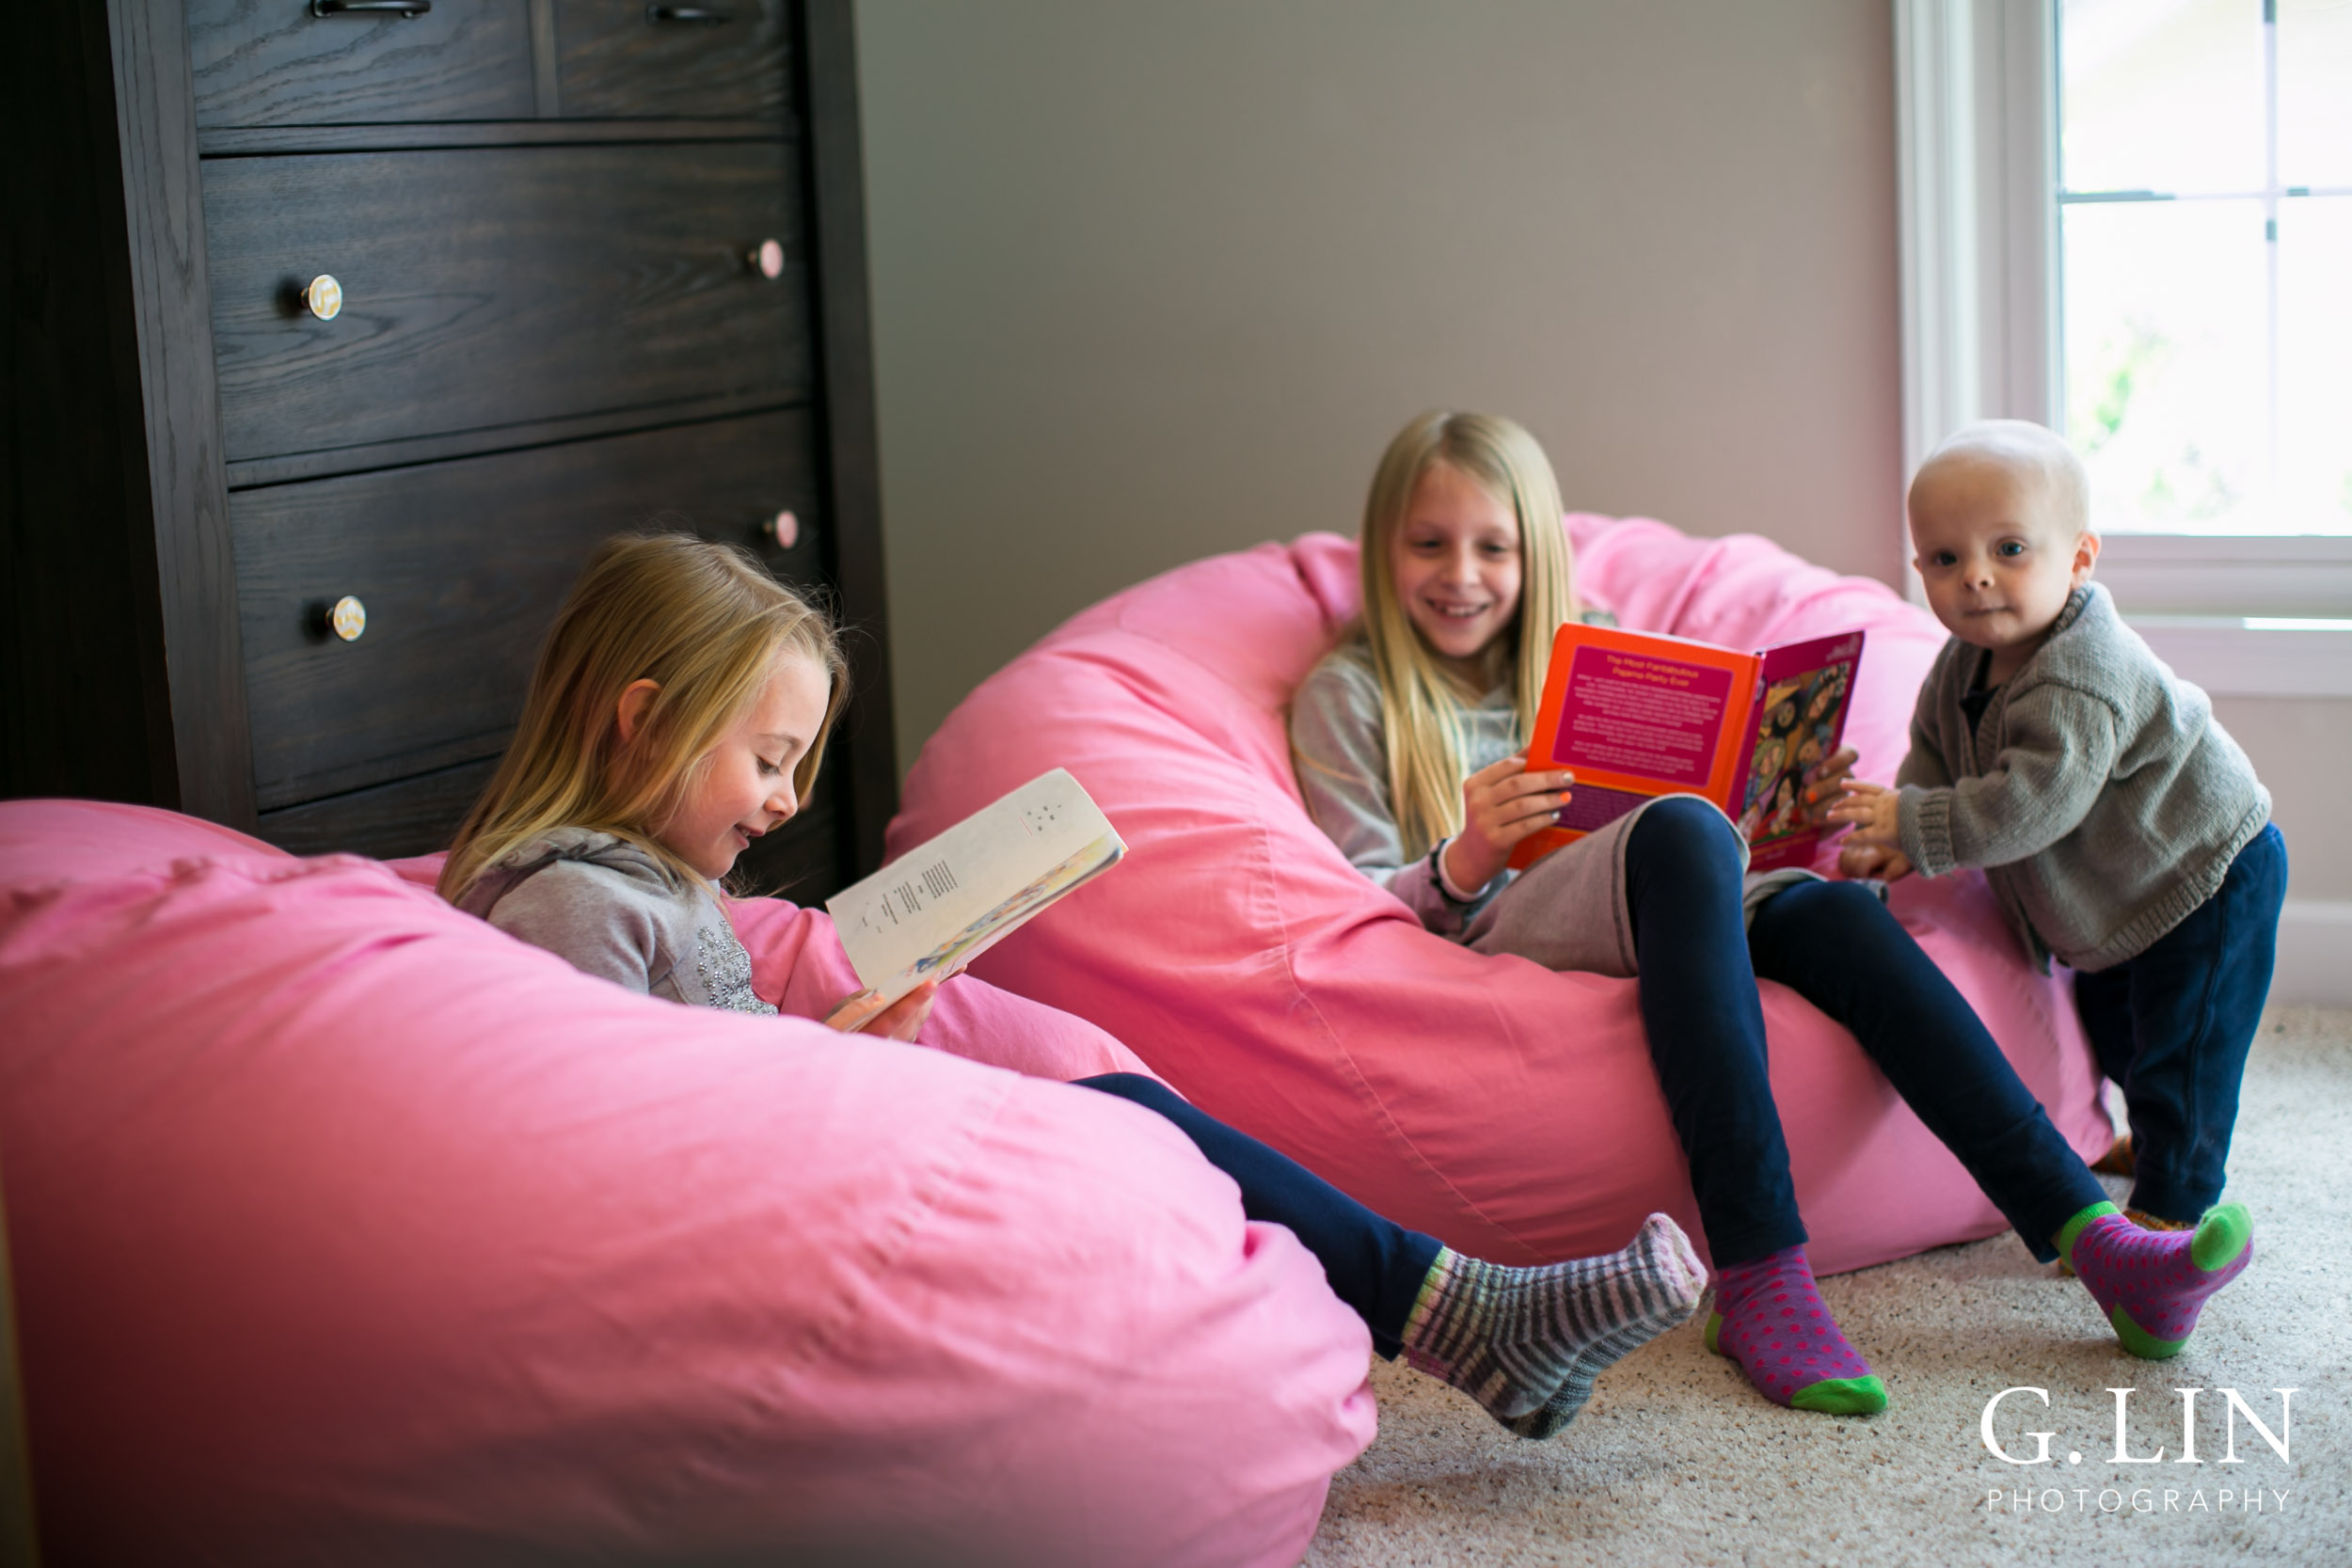 Raleigh Family Photographer   G. Lin Photography   Children sitting on bean bags and reading